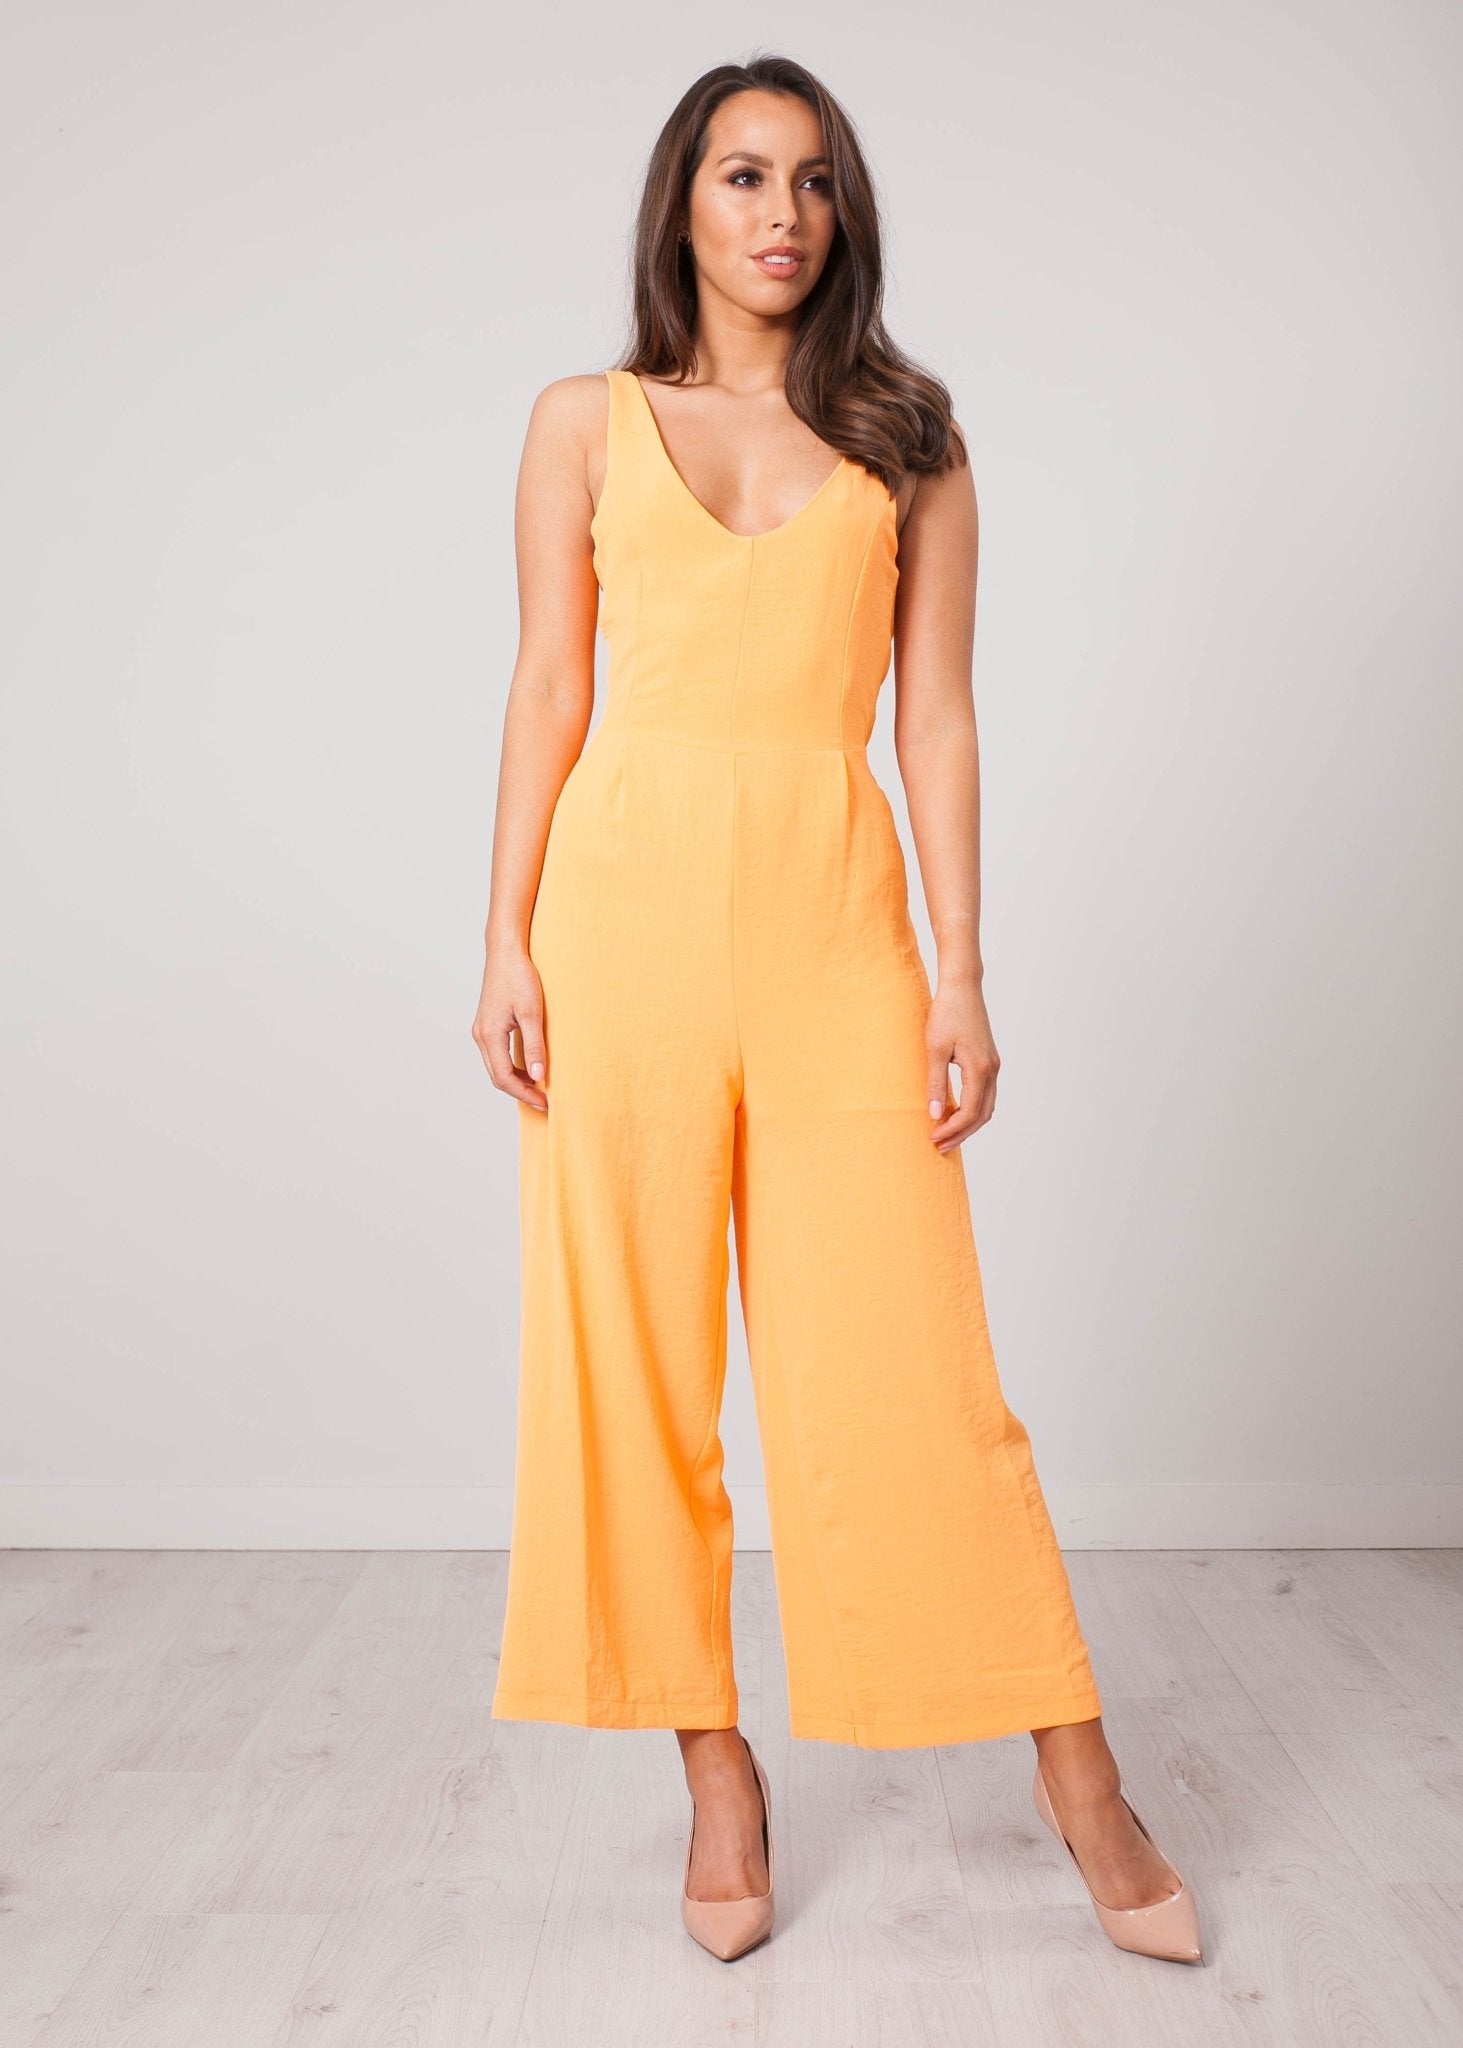 Rita Orange Jumpsuit - The Walk in Wardrobe